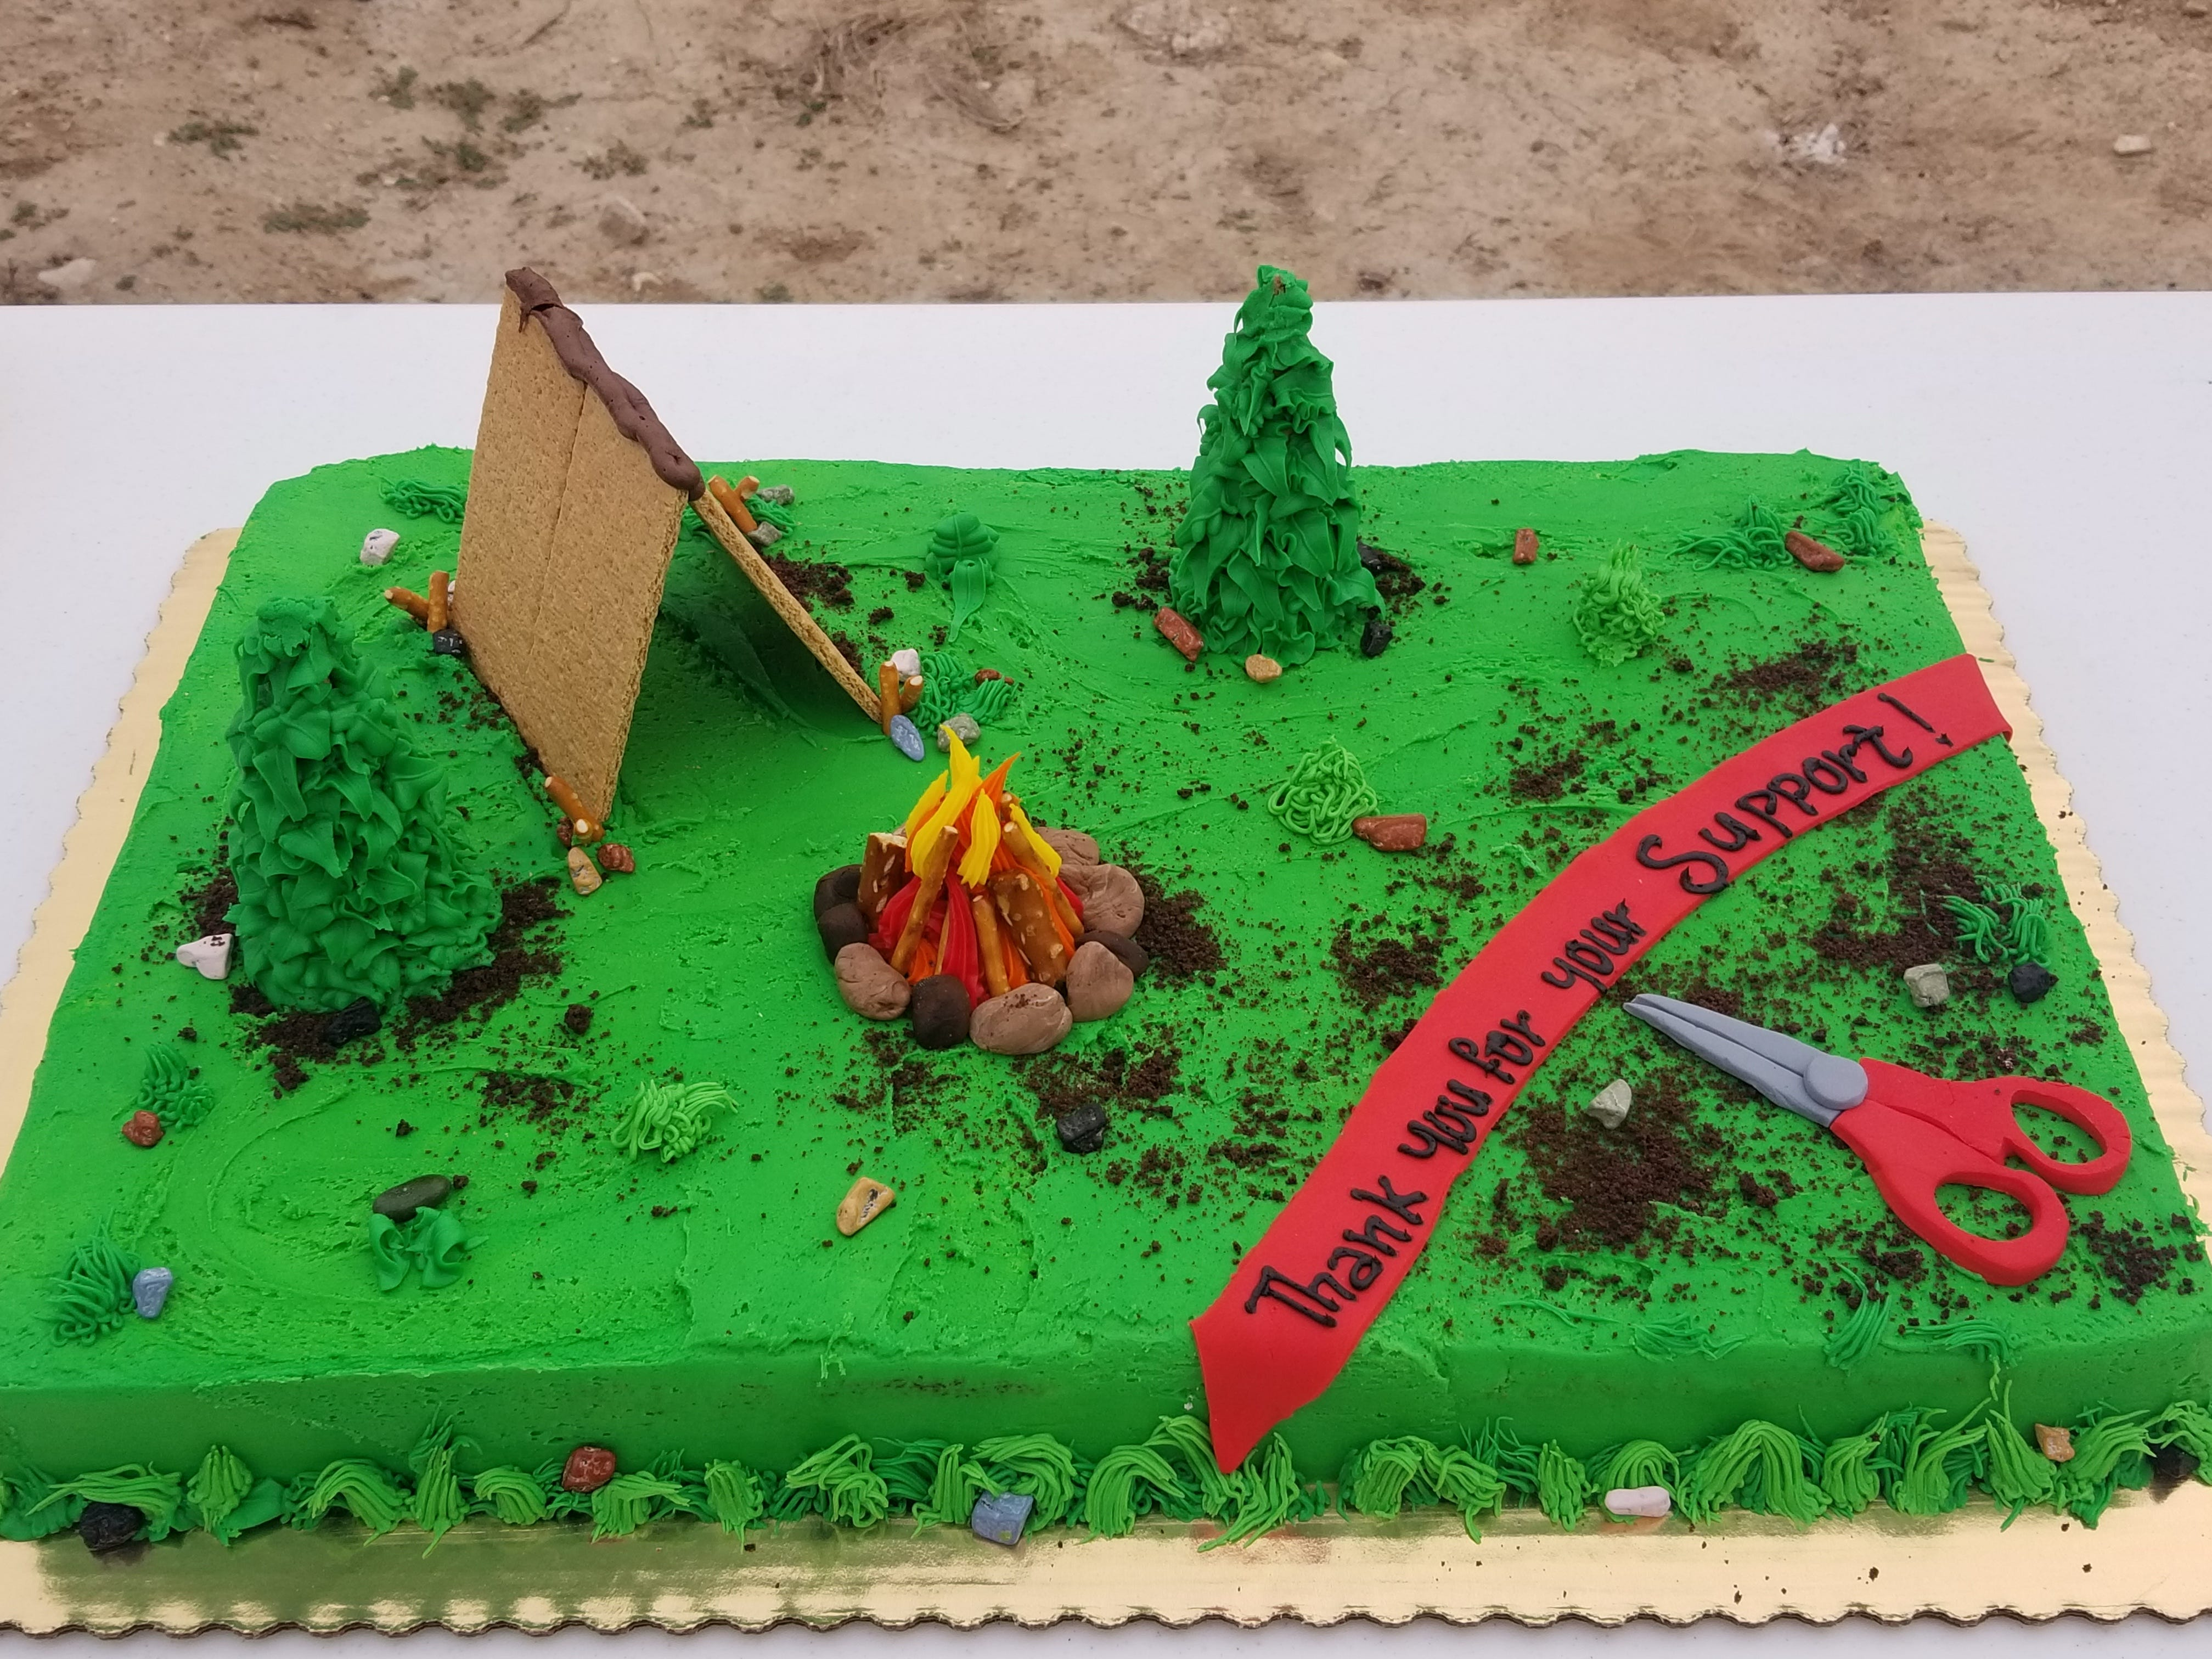 The opening of the Chosa Campground was celebrated with cake.